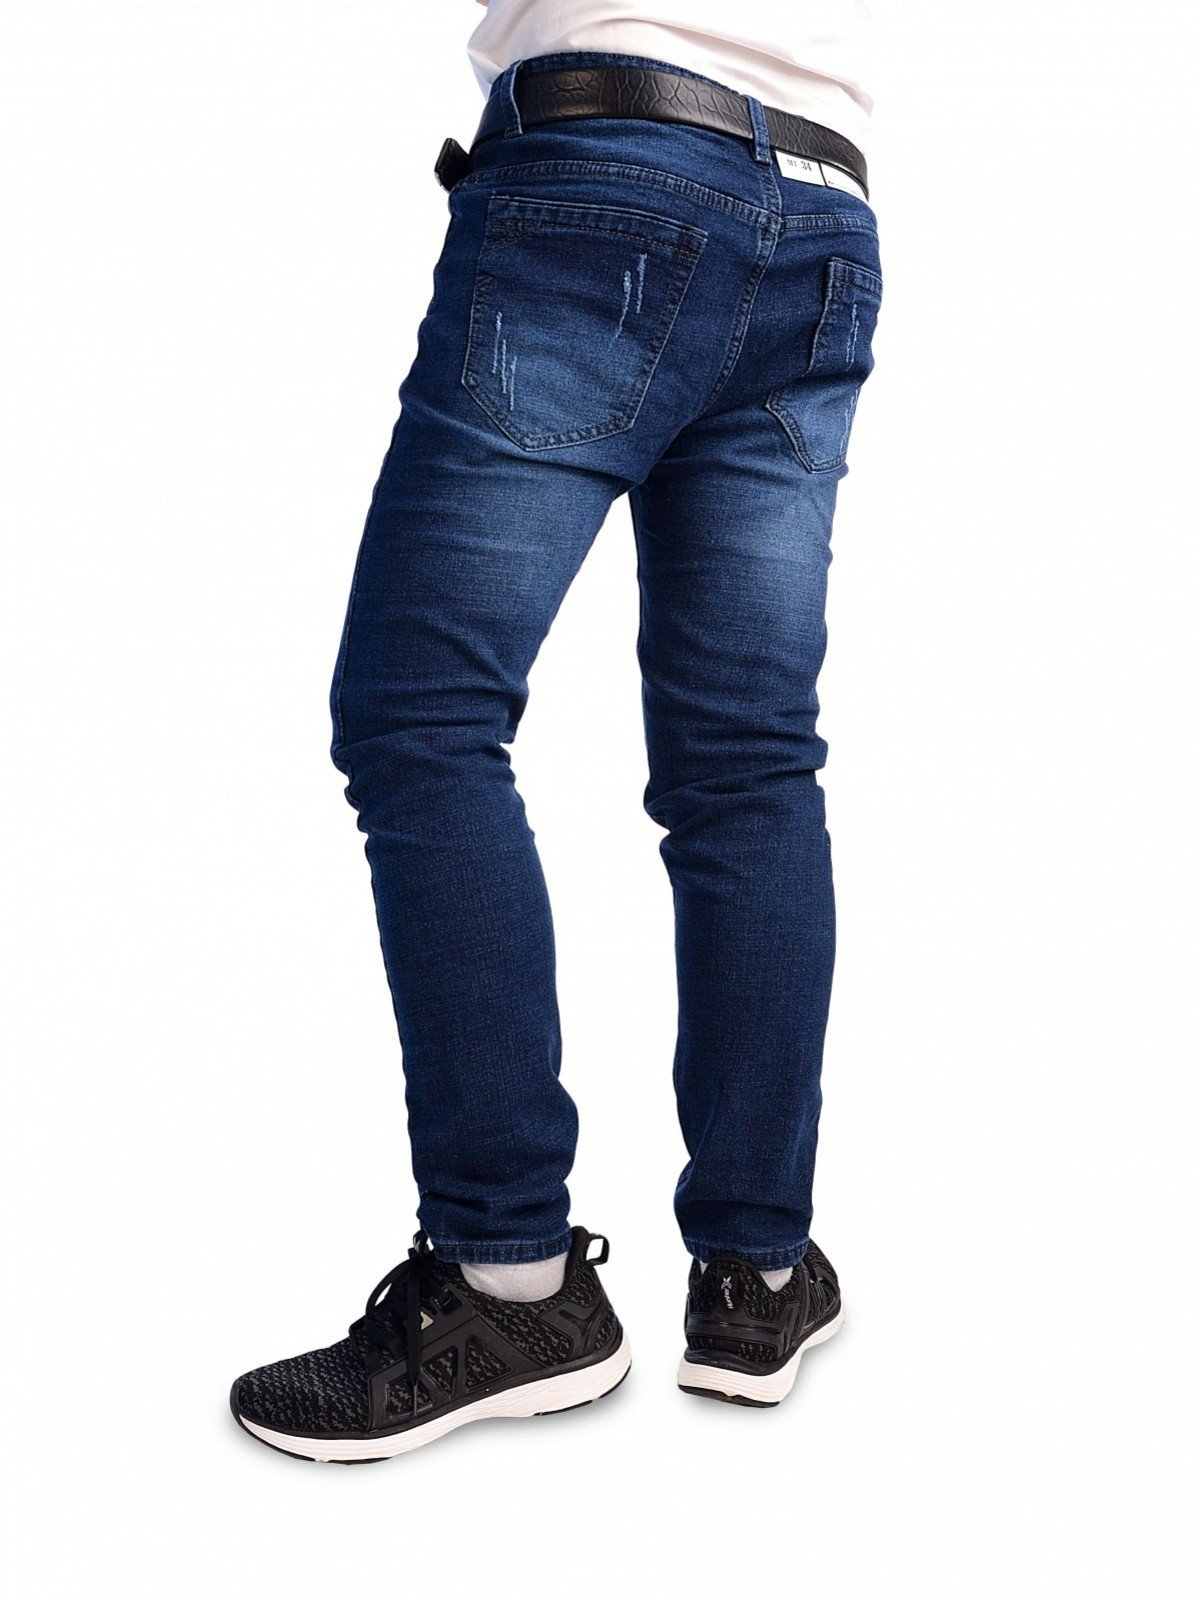 jeans ong con